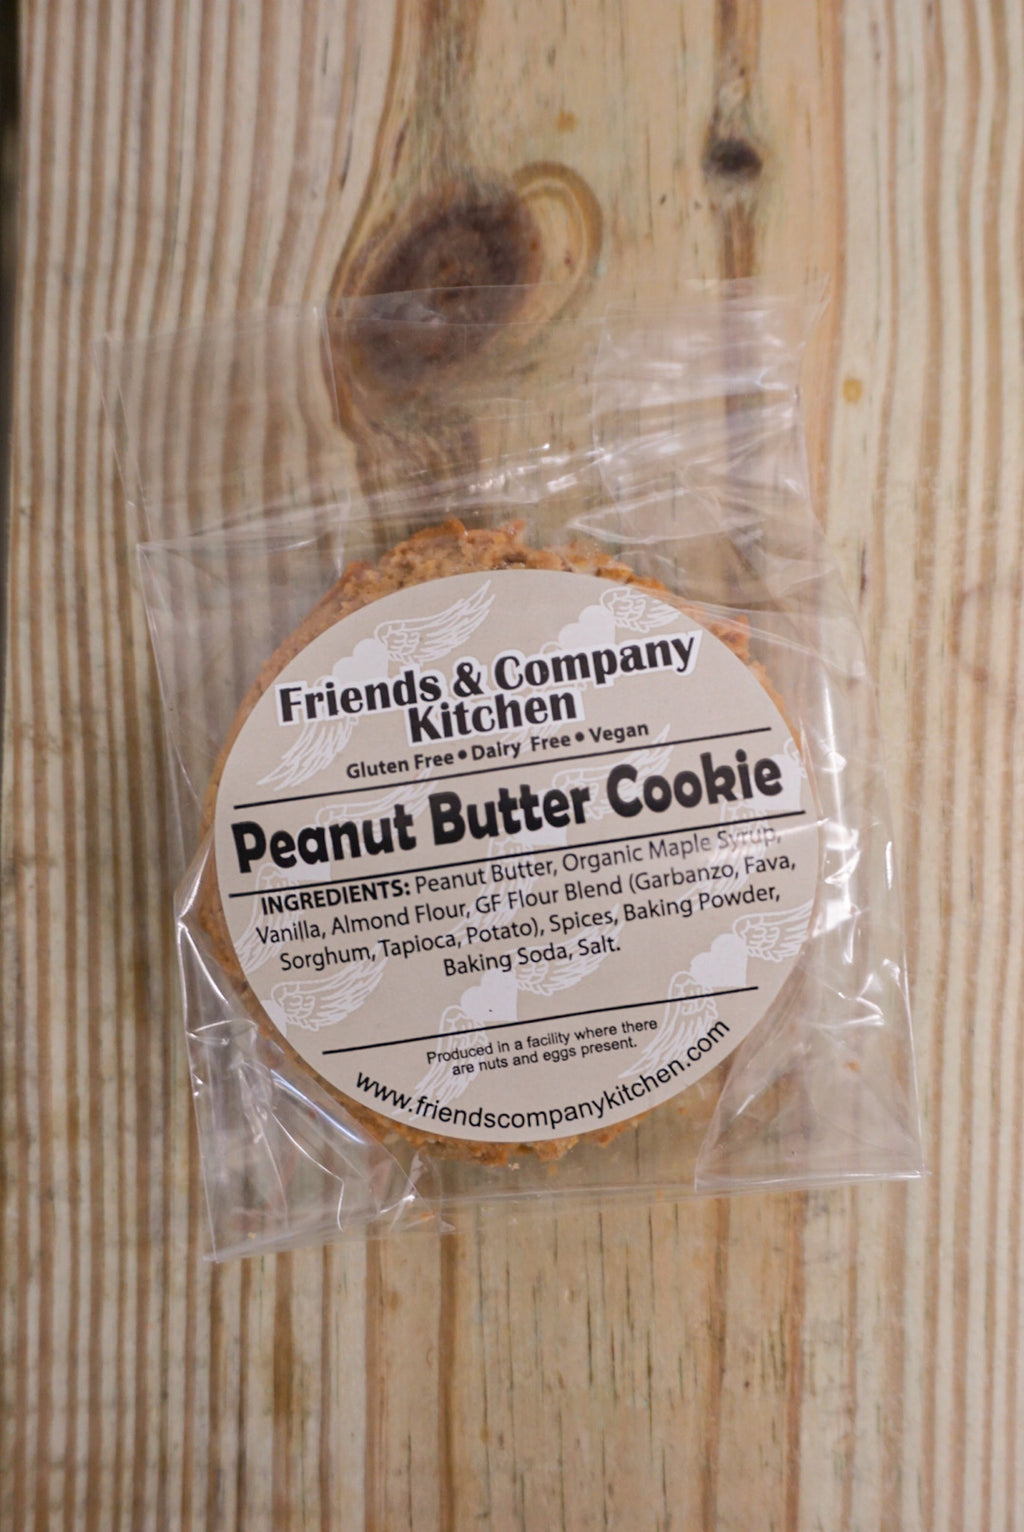 Friends & Company Kitchen Peanut Butter Cookie - Darien